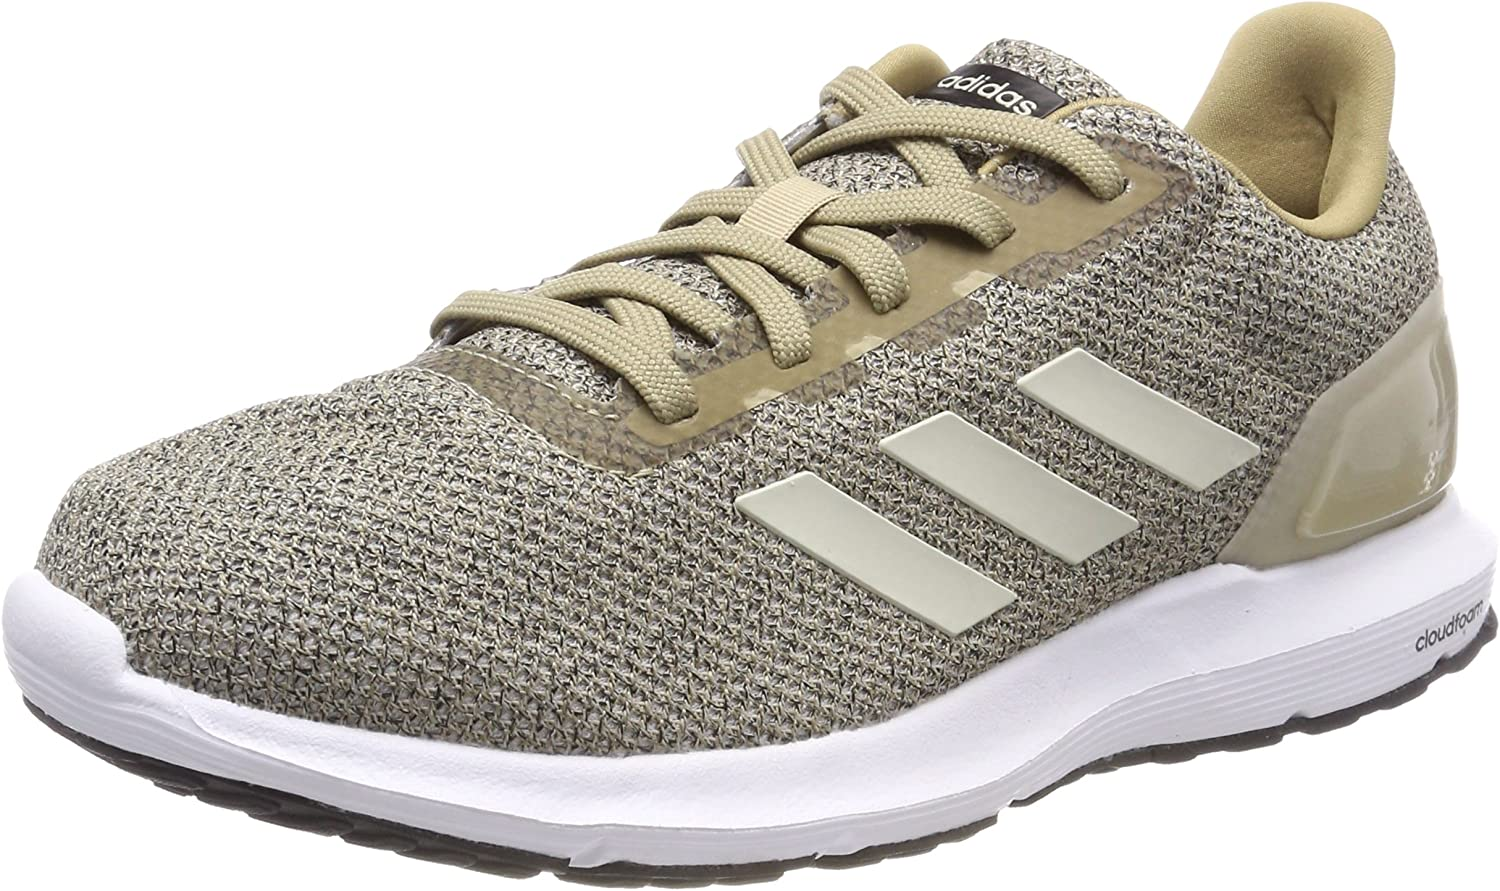 Adidas Men's Cosmic 2.0 Competition Running shoes